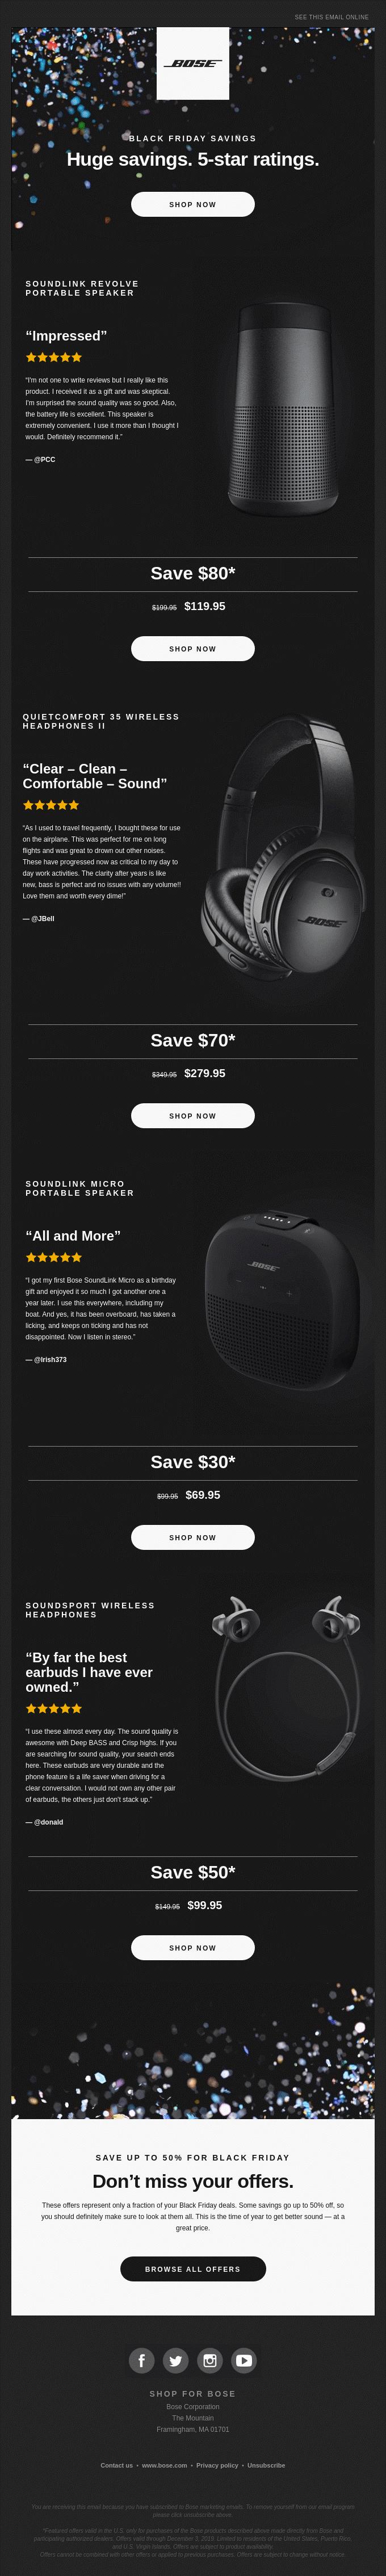 Bose uses testimonials in a Black Friday email.